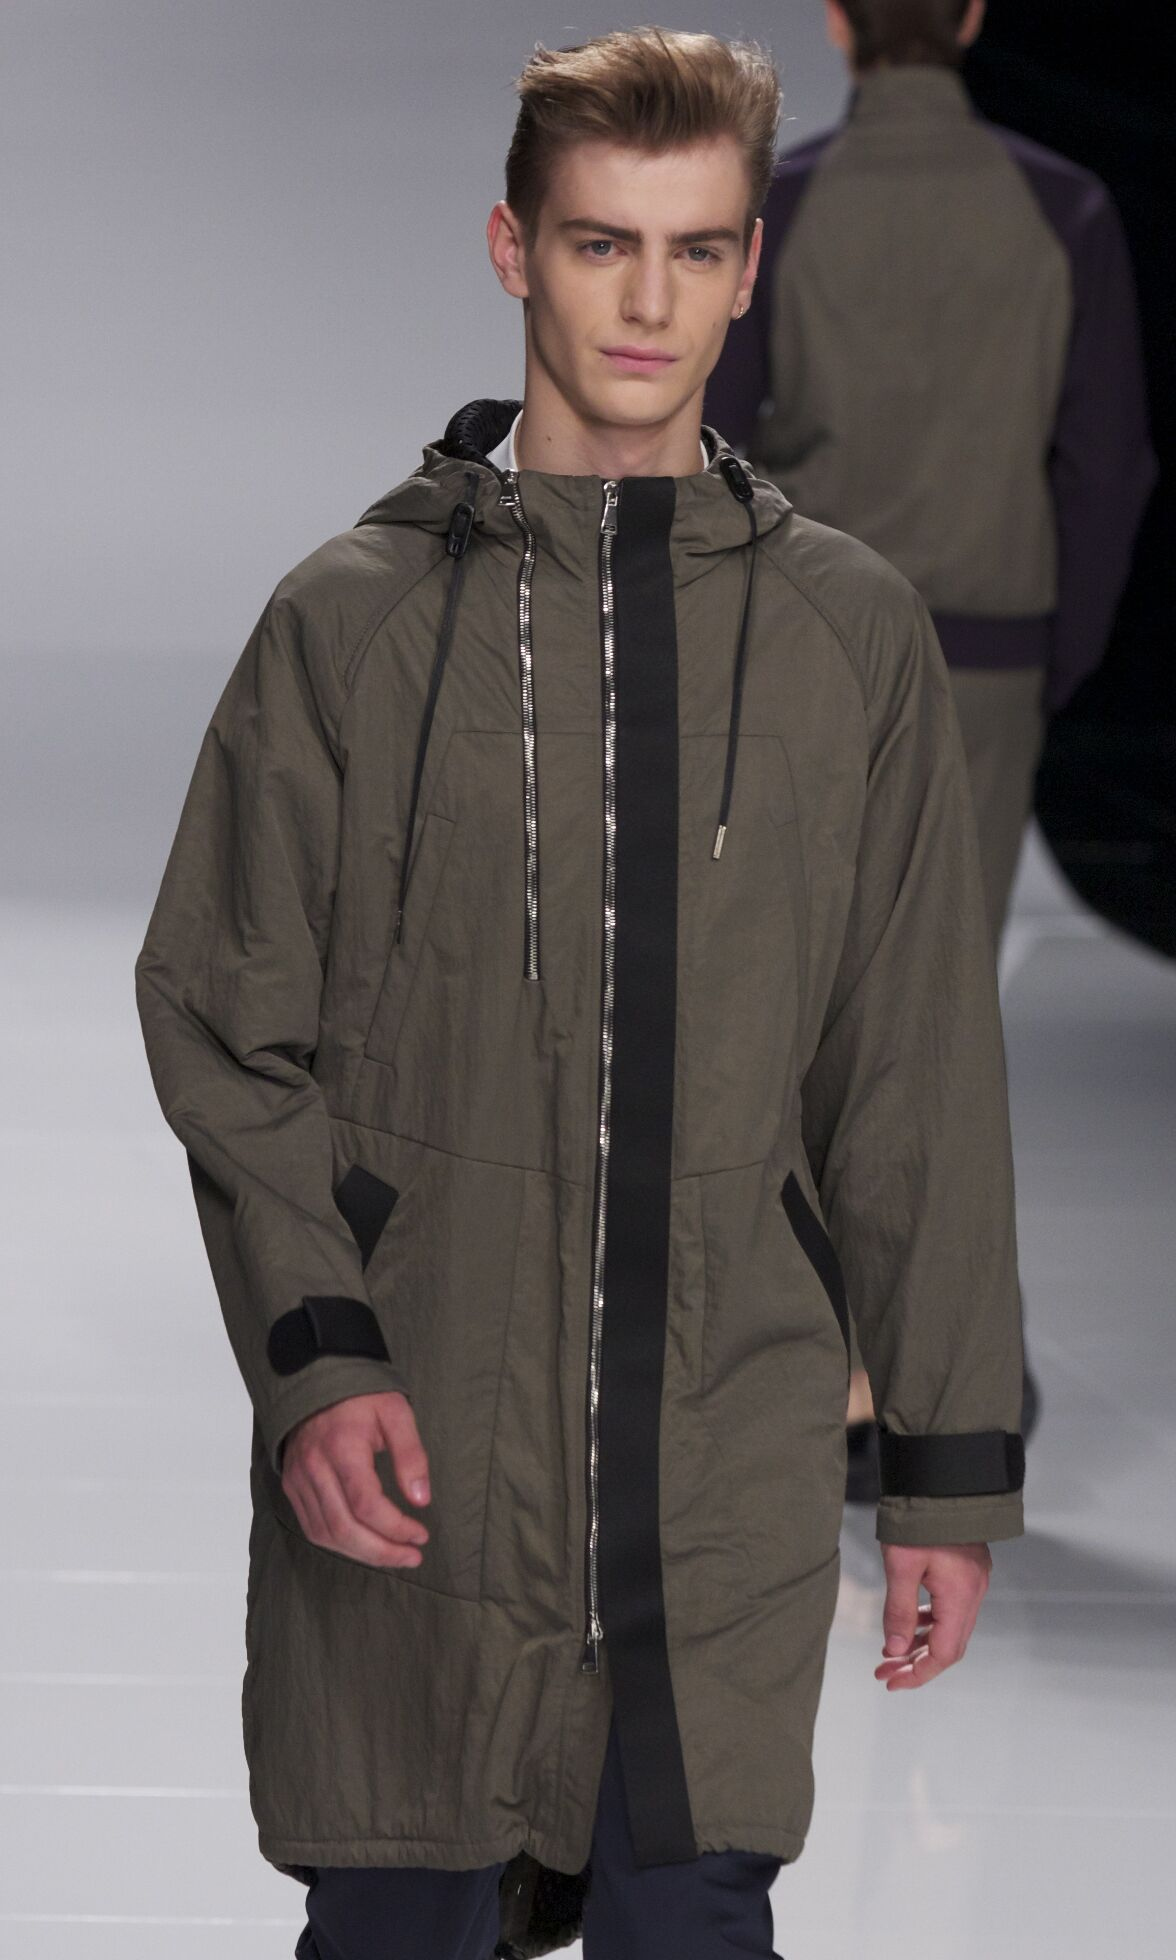 Iceberg Men's Collection 2014